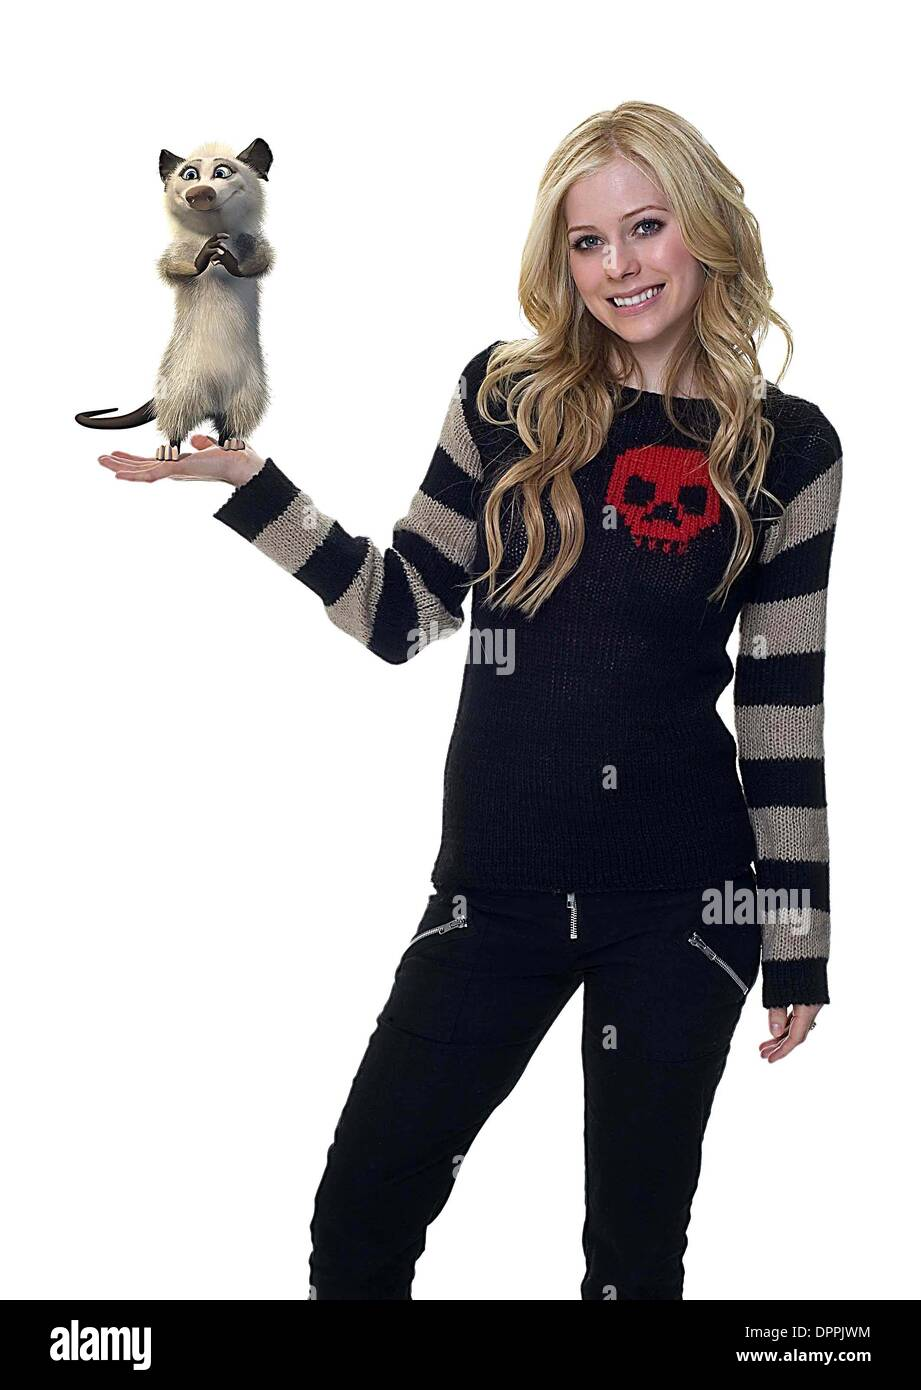 Feb. 28, 2006 - K49211ES.OVER THE HEDGE.TV-FILM STILL.SUPPLIED BY    AVRIL LAVIGNE(Credit Image: © Globe Photos/ZUMAPRESS.com) - Stock Image